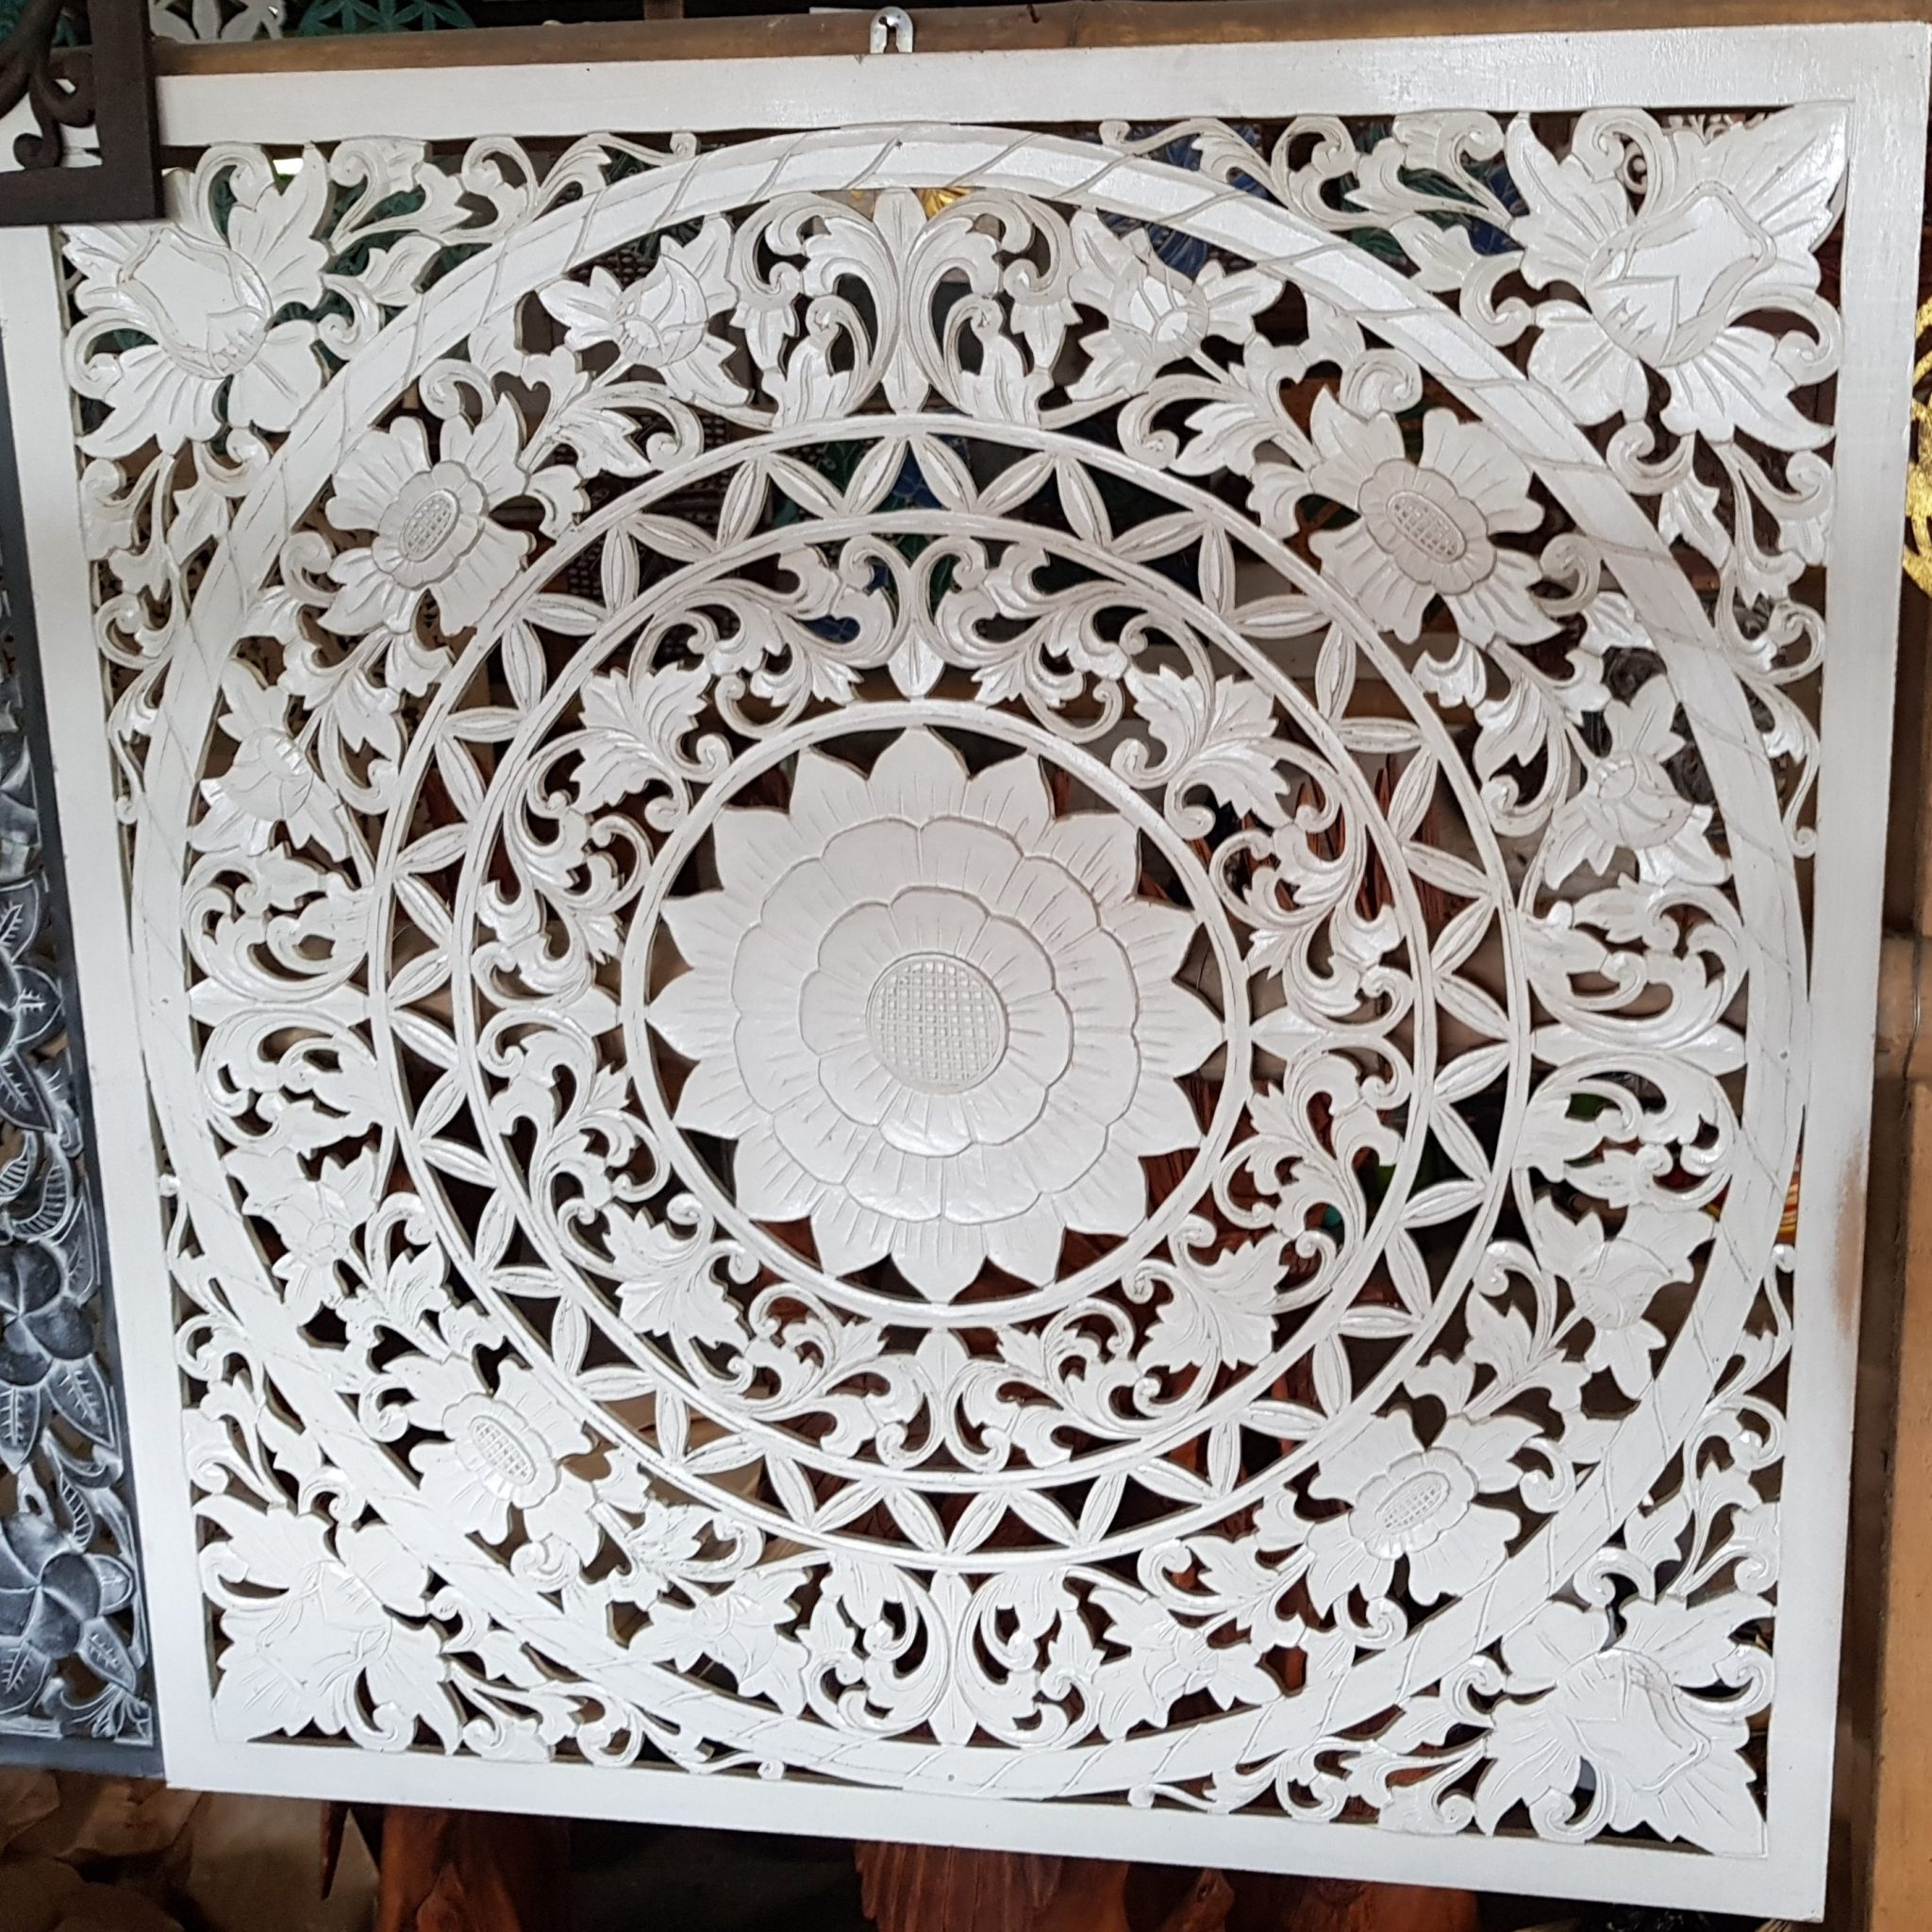 wall hanging mandala art carving wood white wash Bali Balinese Tropical Scene Adelaide Australia 100cm